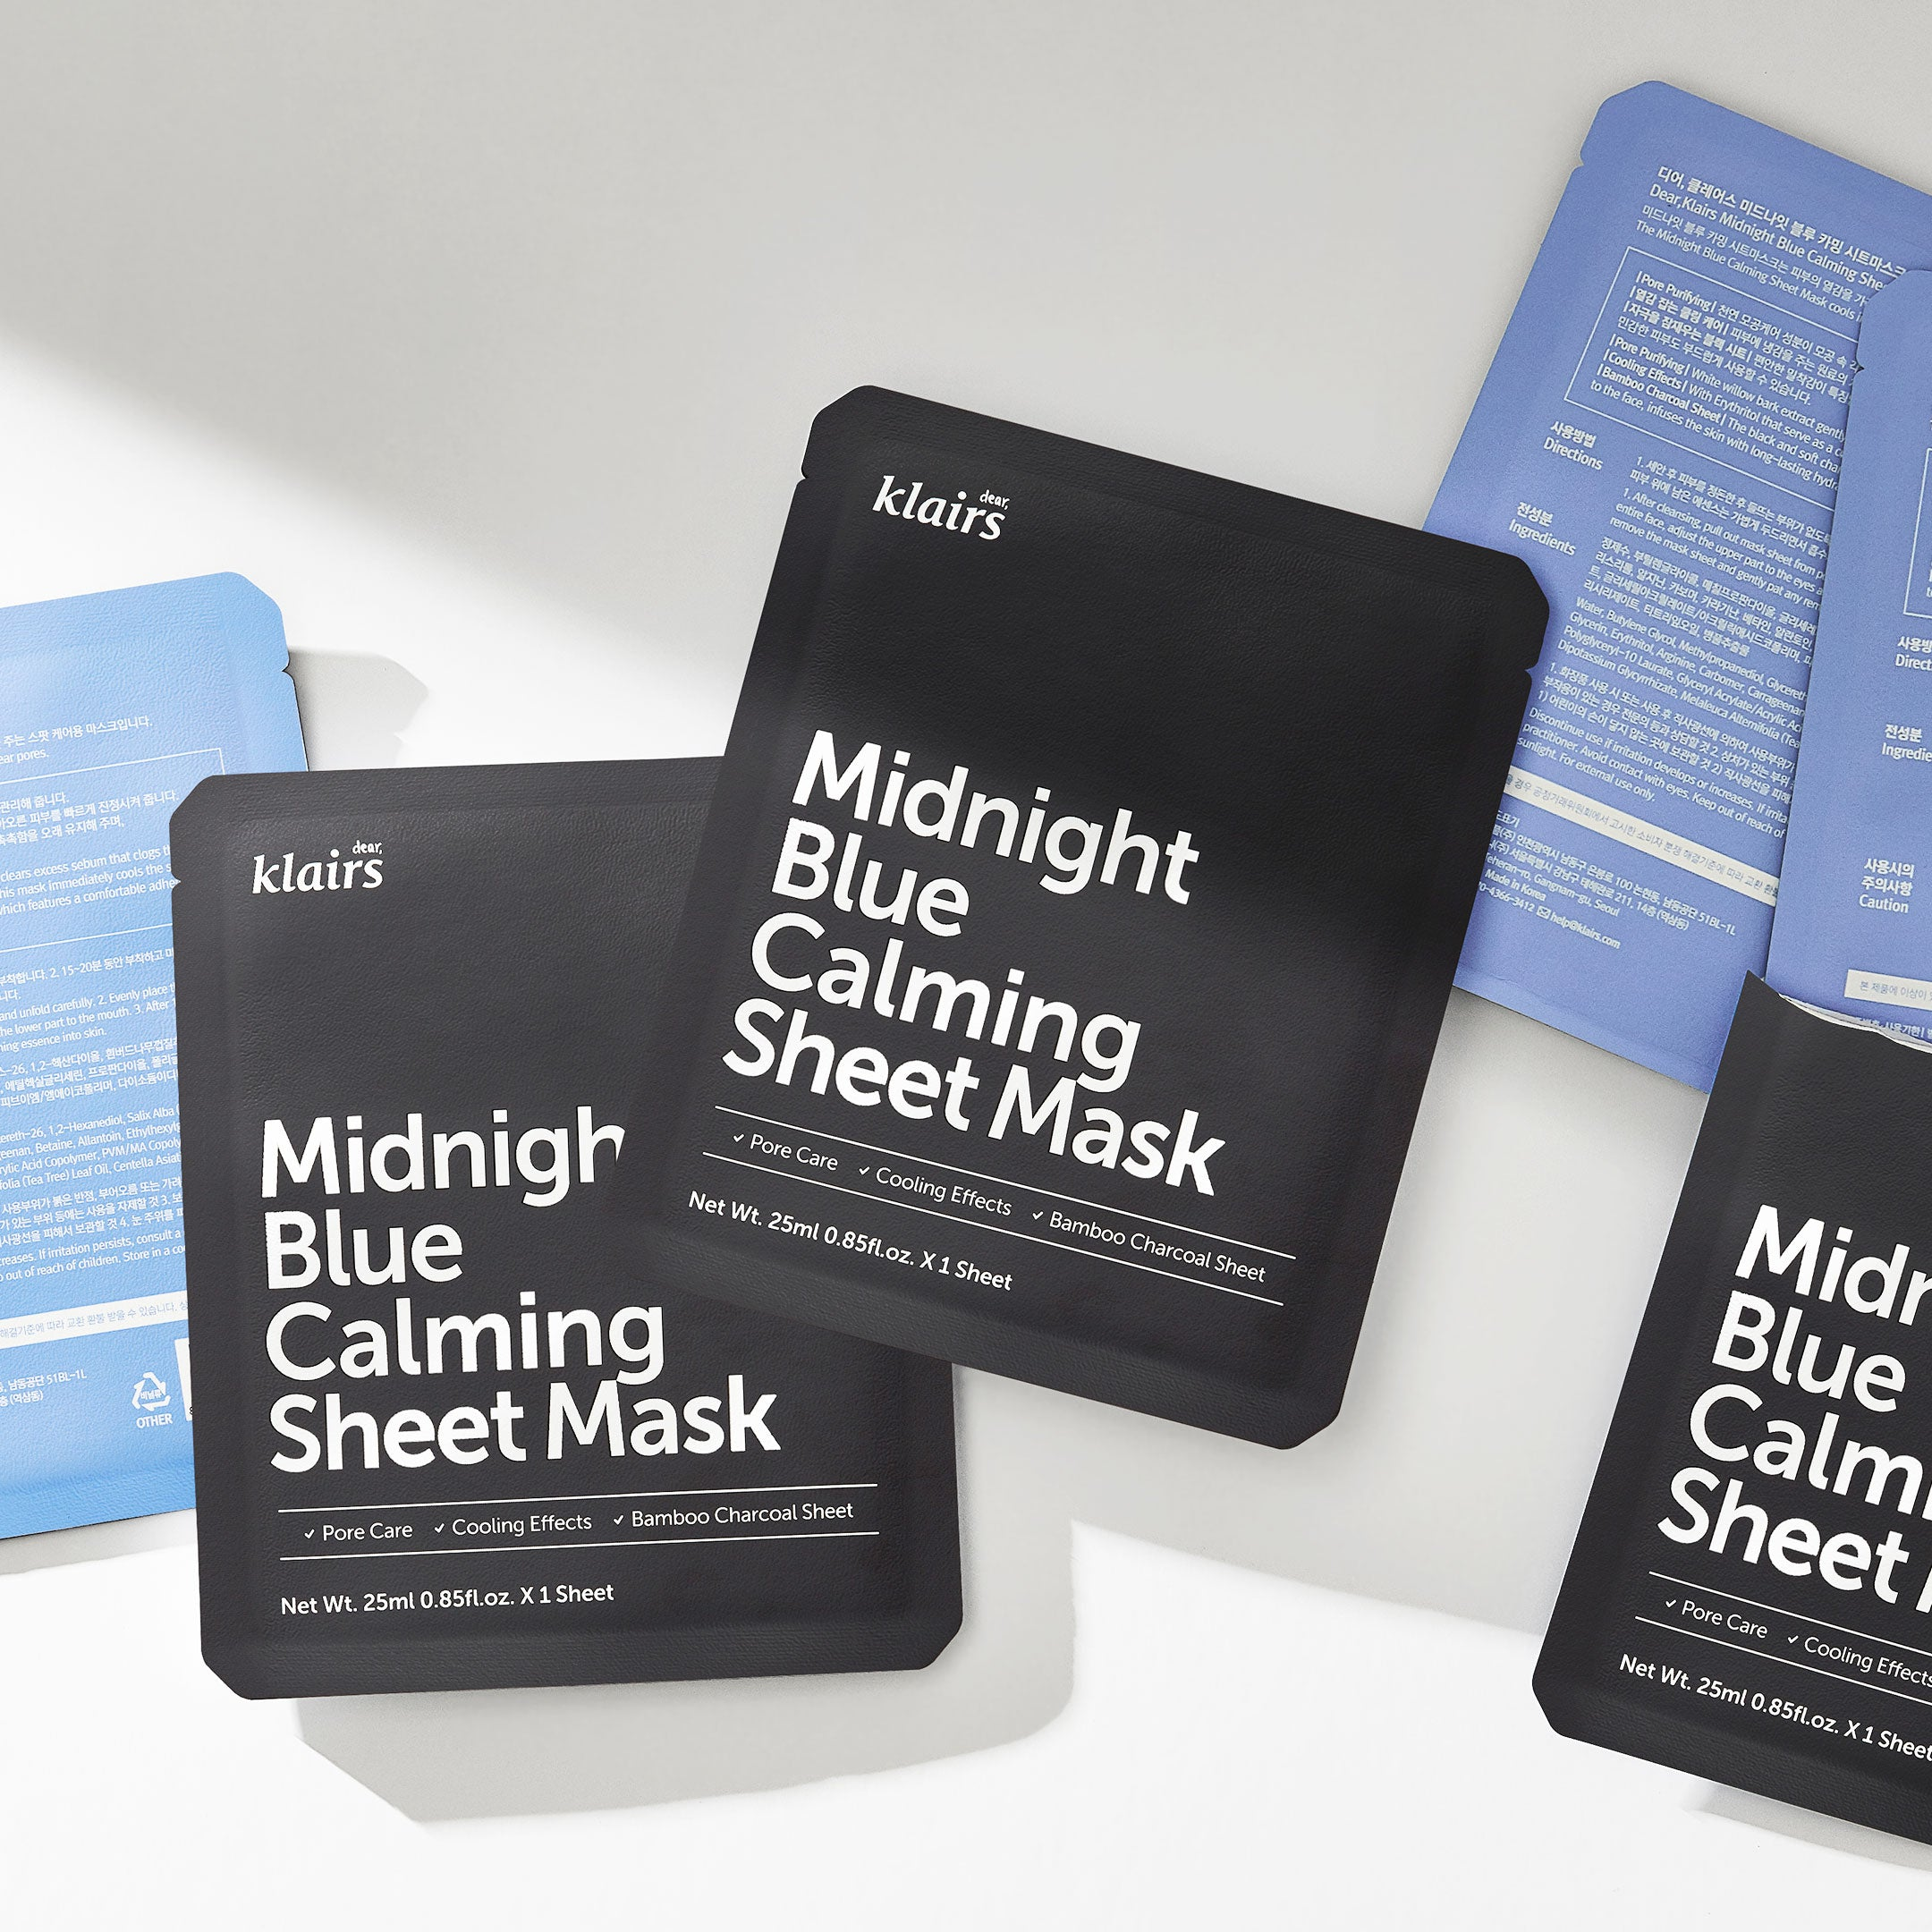 Midnight Blue Calming Sheet Mask by Klairs #5